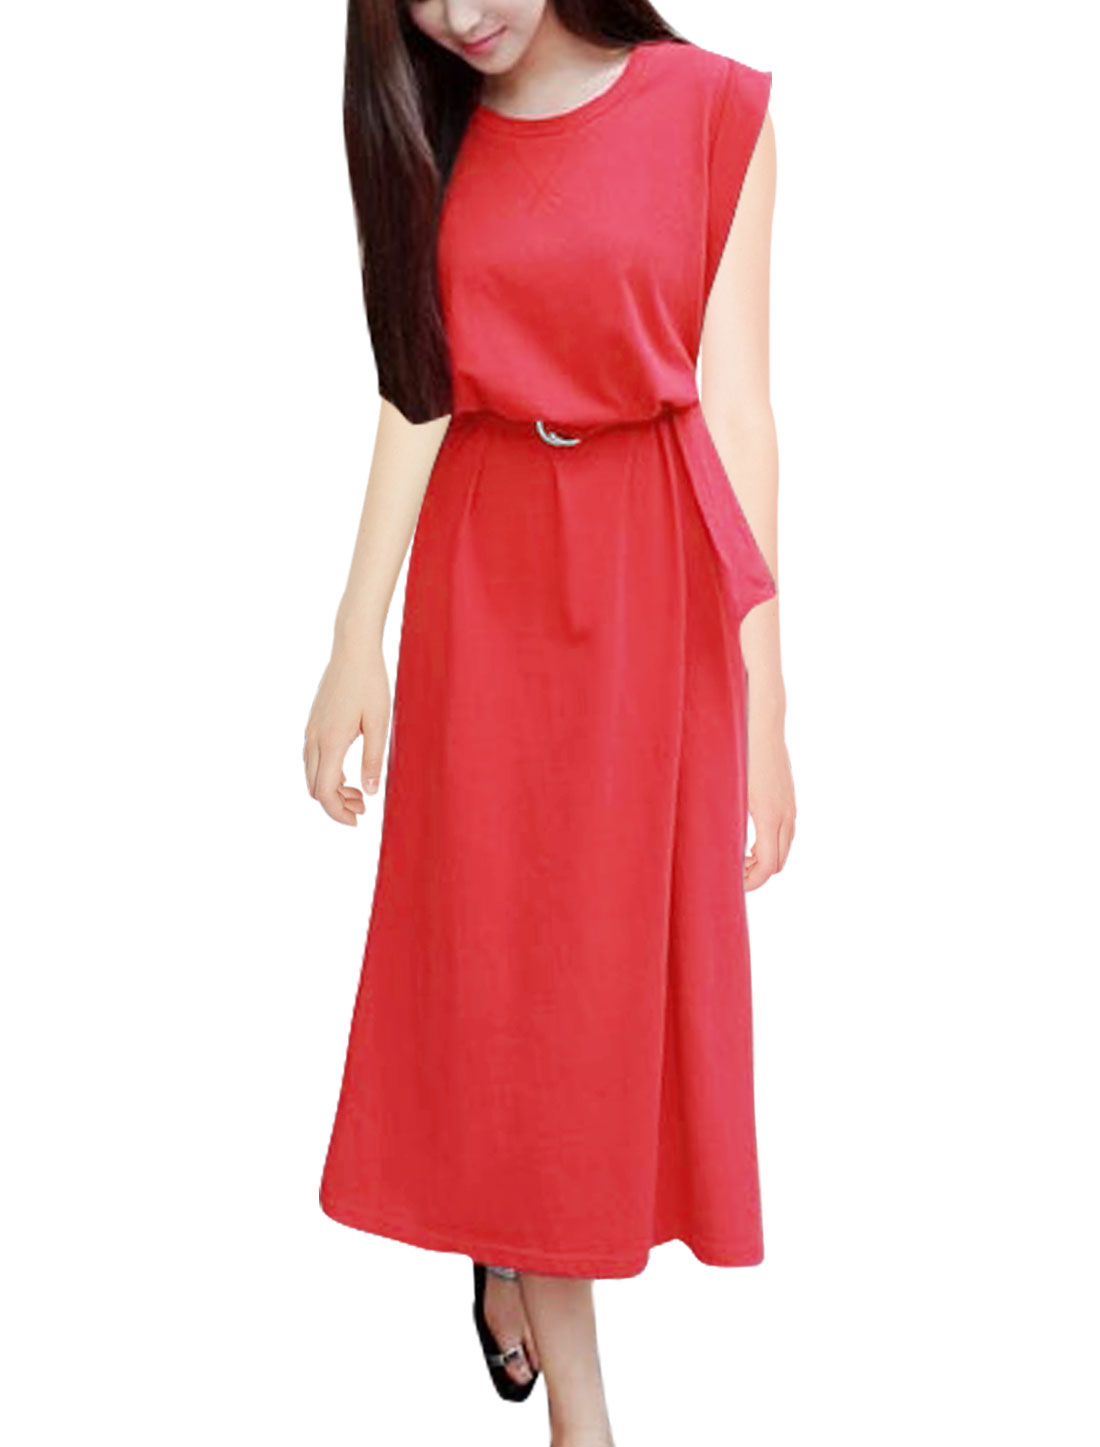 Woman Cuffed Sleeves Split Sides Midi Dress w Belt Red XS